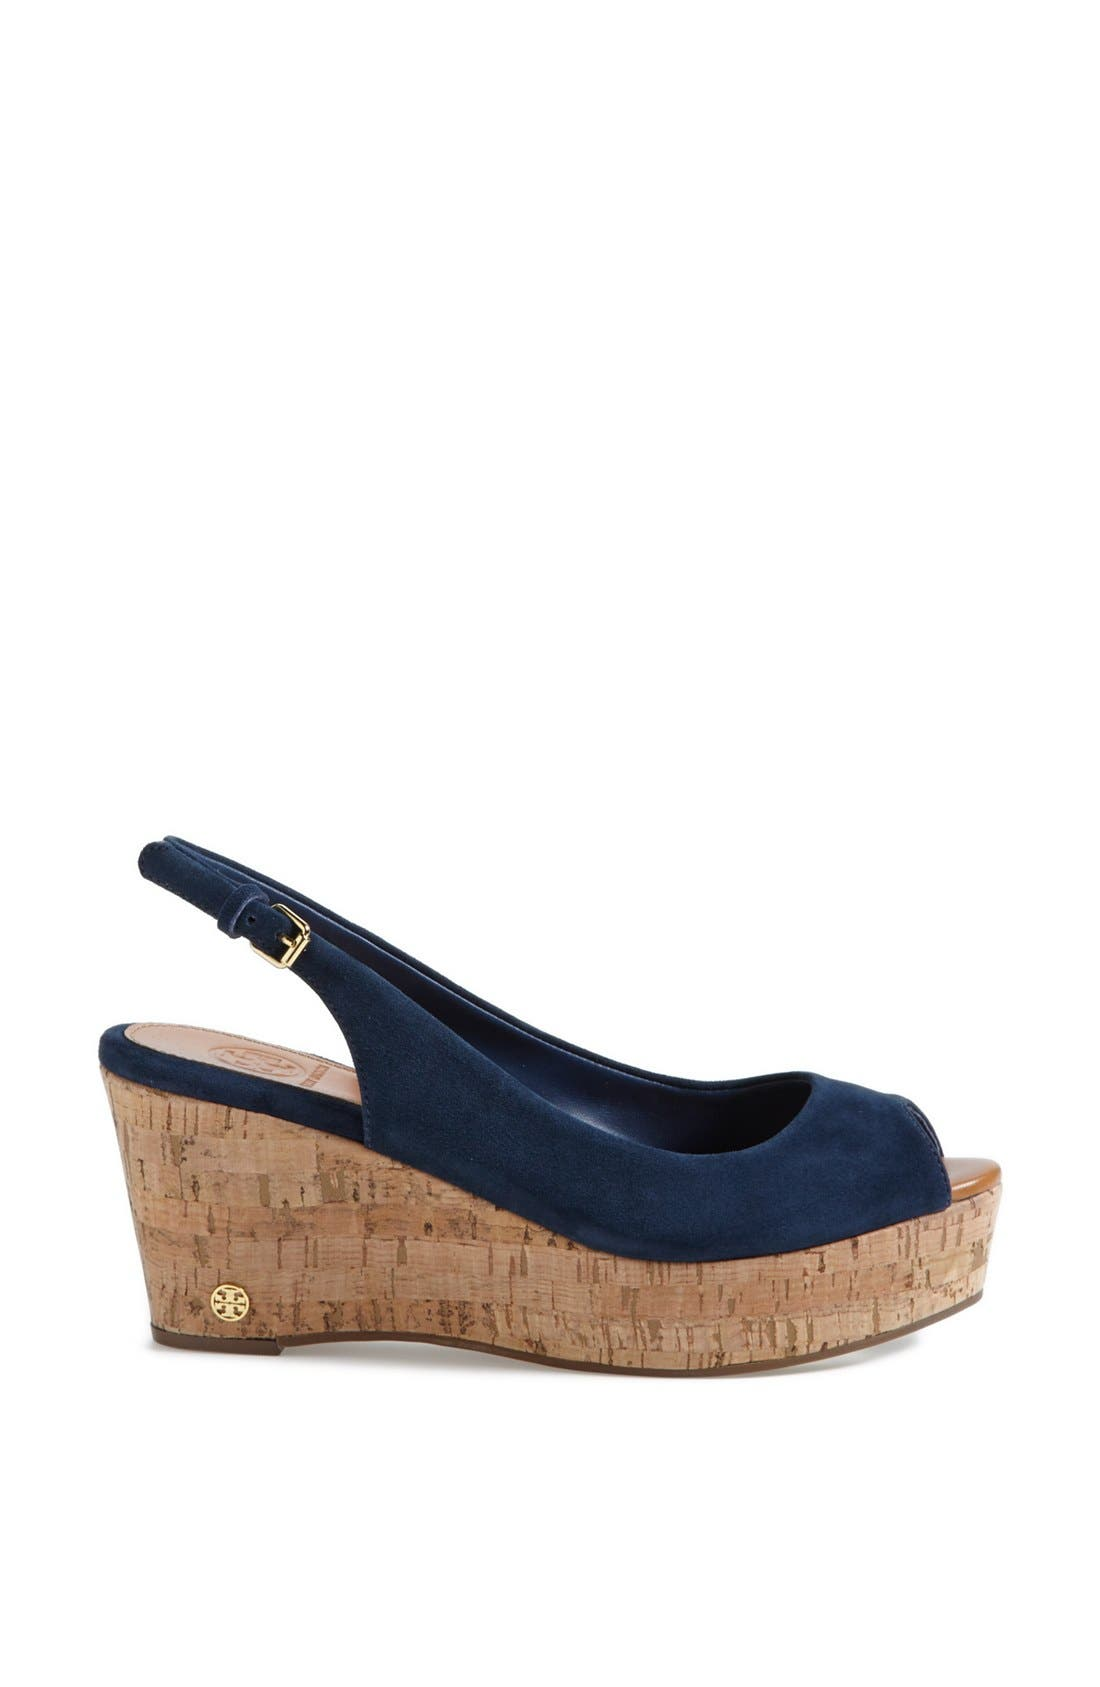 Alternate Image 3  - Tory Burch 'Rosalind' Wedge Sandal (Online Only)